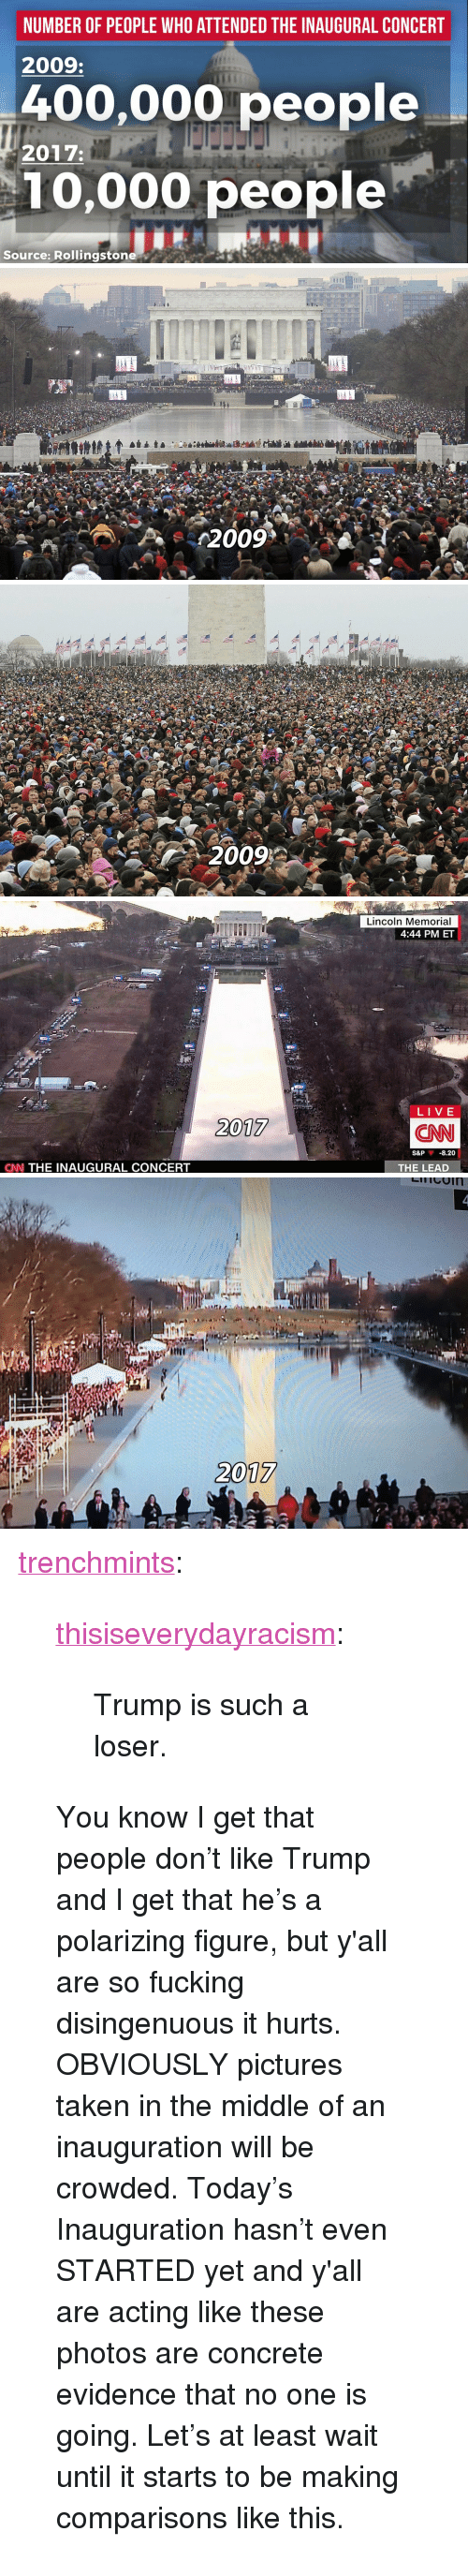 """disingenuous: NUMBER OF PEOPLE WHO ATTENDED THE INAUGURAL CONCERT  2009:  400,000 people  10,000 people  2017:  Source: Rollingstone   Lincoln Memorial  4:44 PM ET  LIVE  2017  CNN  S&P  -8.20  CNN THE INAUGURAL CONCERT  THE LEAD   2017 <p><a href=""""https://trenchmints.tumblr.com/post/156122840402/trump-is-such-a-loser"""" class=""""tumblr_blog"""">trenchmints</a>:</p>  <blockquote><p><a href=""""https://thisiseverydayracism.tumblr.com/post/156108617461/trump-is-such-a-loser"""" class=""""tumblr_blog"""">thisiseverydayracism</a>:</p>  <blockquote><p>Trump is such a loser.</p></blockquote>  <p>You know I get that people don't like Trump and I get that he's a polarizing figure, but y'all are so fucking disingenuous it hurts.</p><p>OBVIOUSLY pictures taken in the middle of an inauguration will be crowded.  Today's Inauguration hasn't even STARTED yet and y'all are acting like these photos are concrete evidence that no one is going.  Let's at least wait until it starts to be making comparisons like this.</p></blockquote>"""